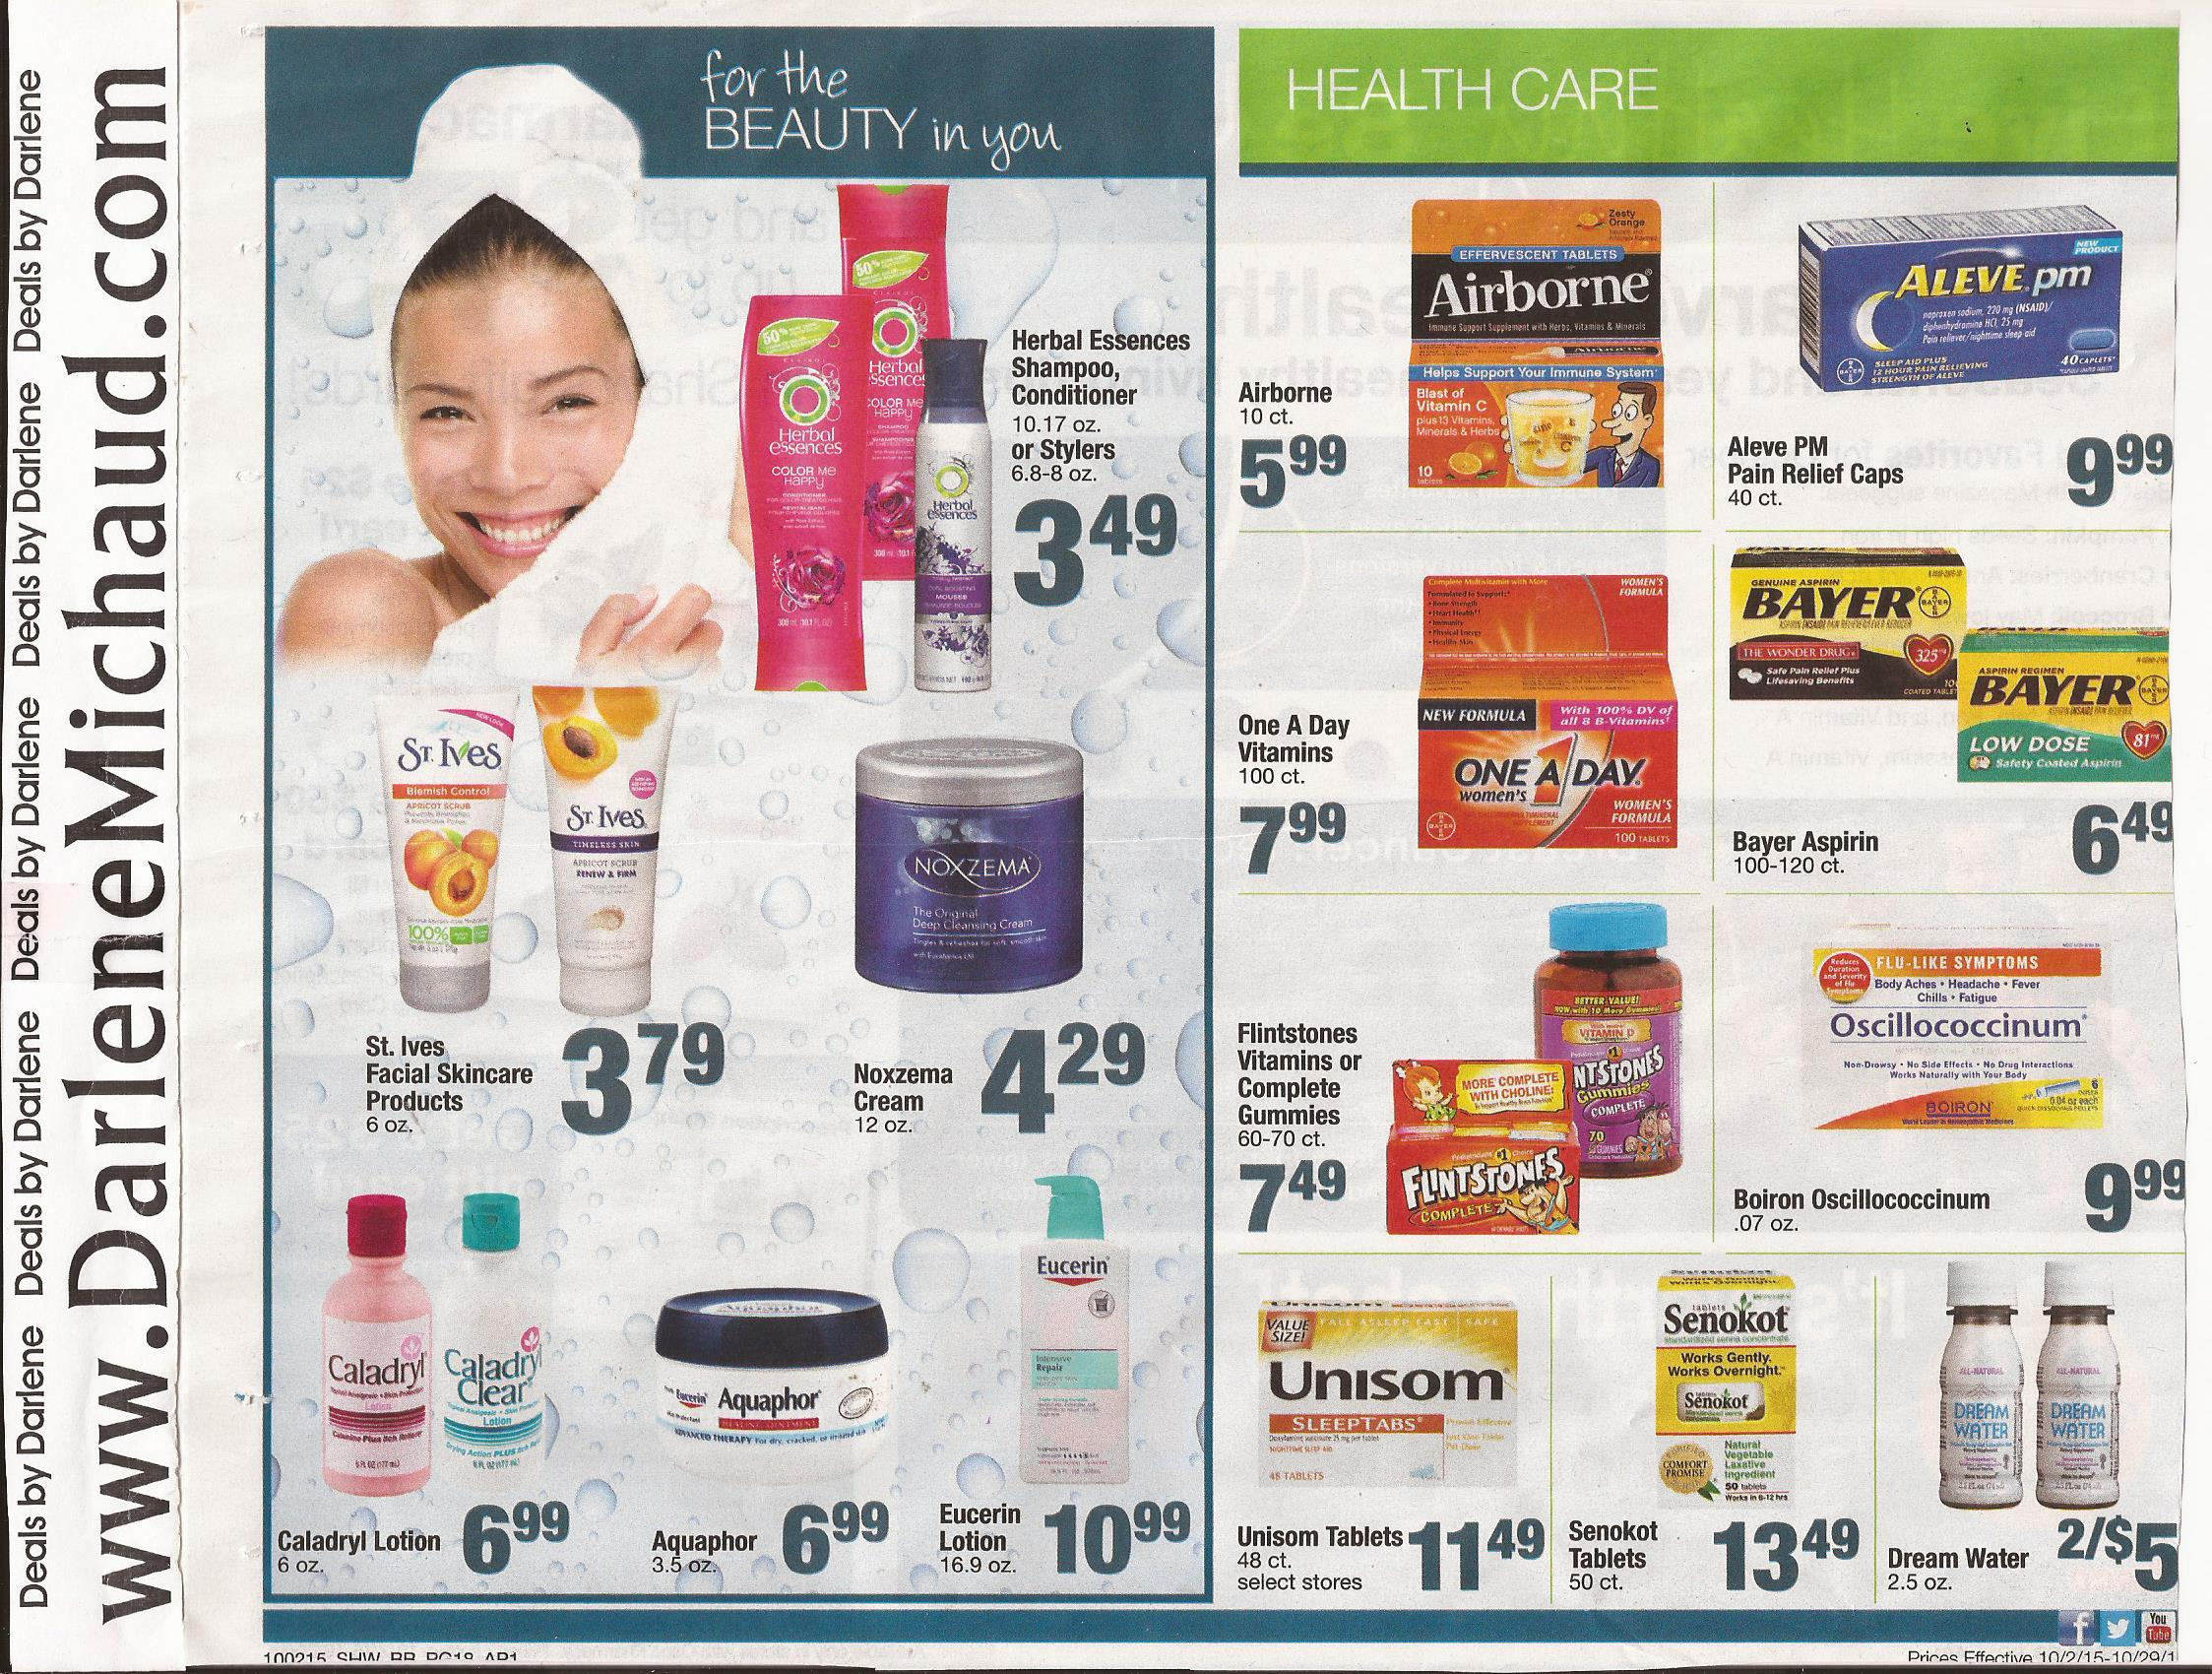 shaws-big-book-savings-10-2-10-29-page-18